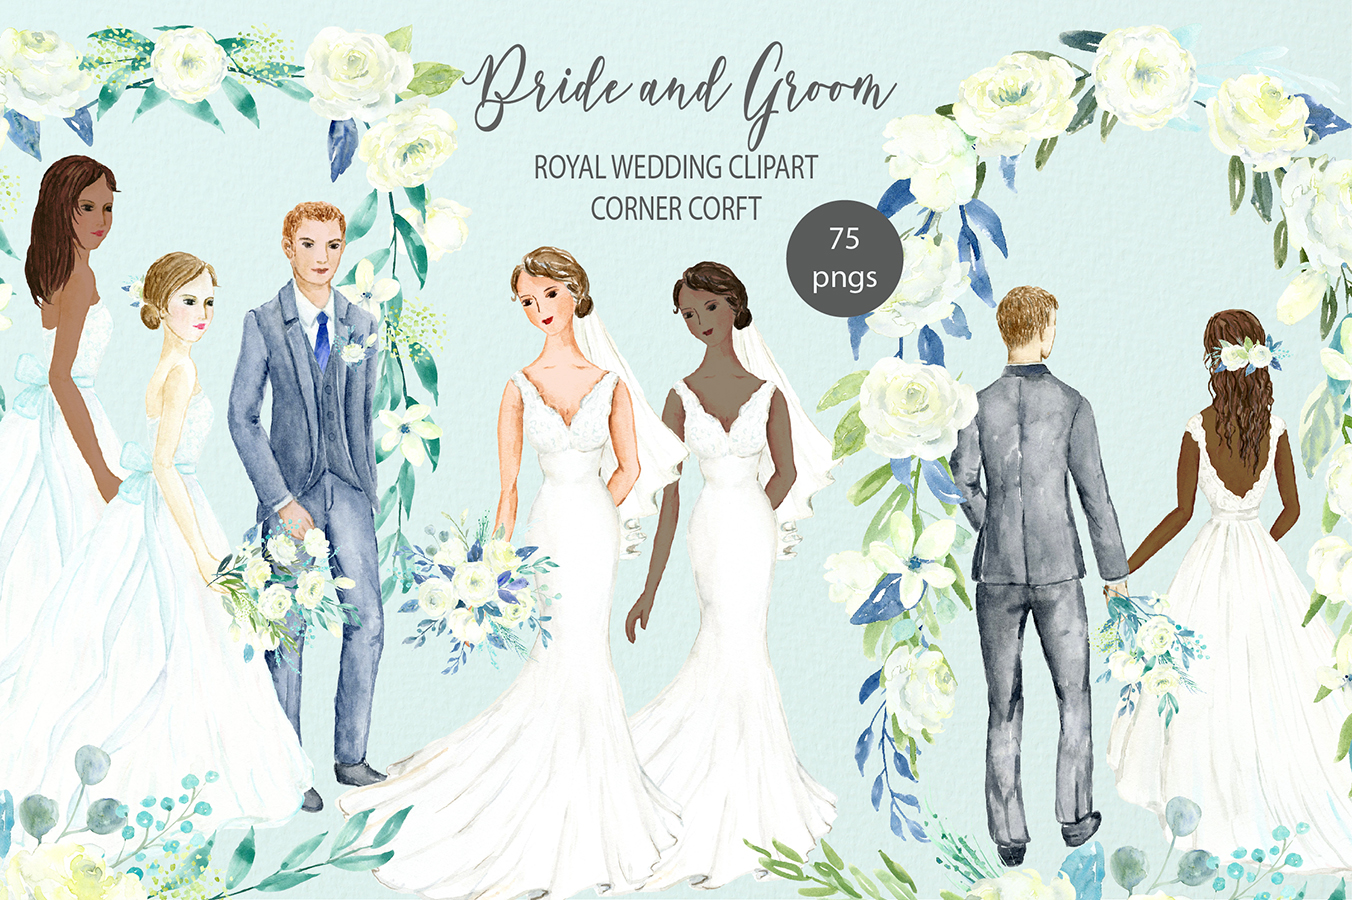 Bride and Groom Figurine Royal Wedding Clipart example image 1